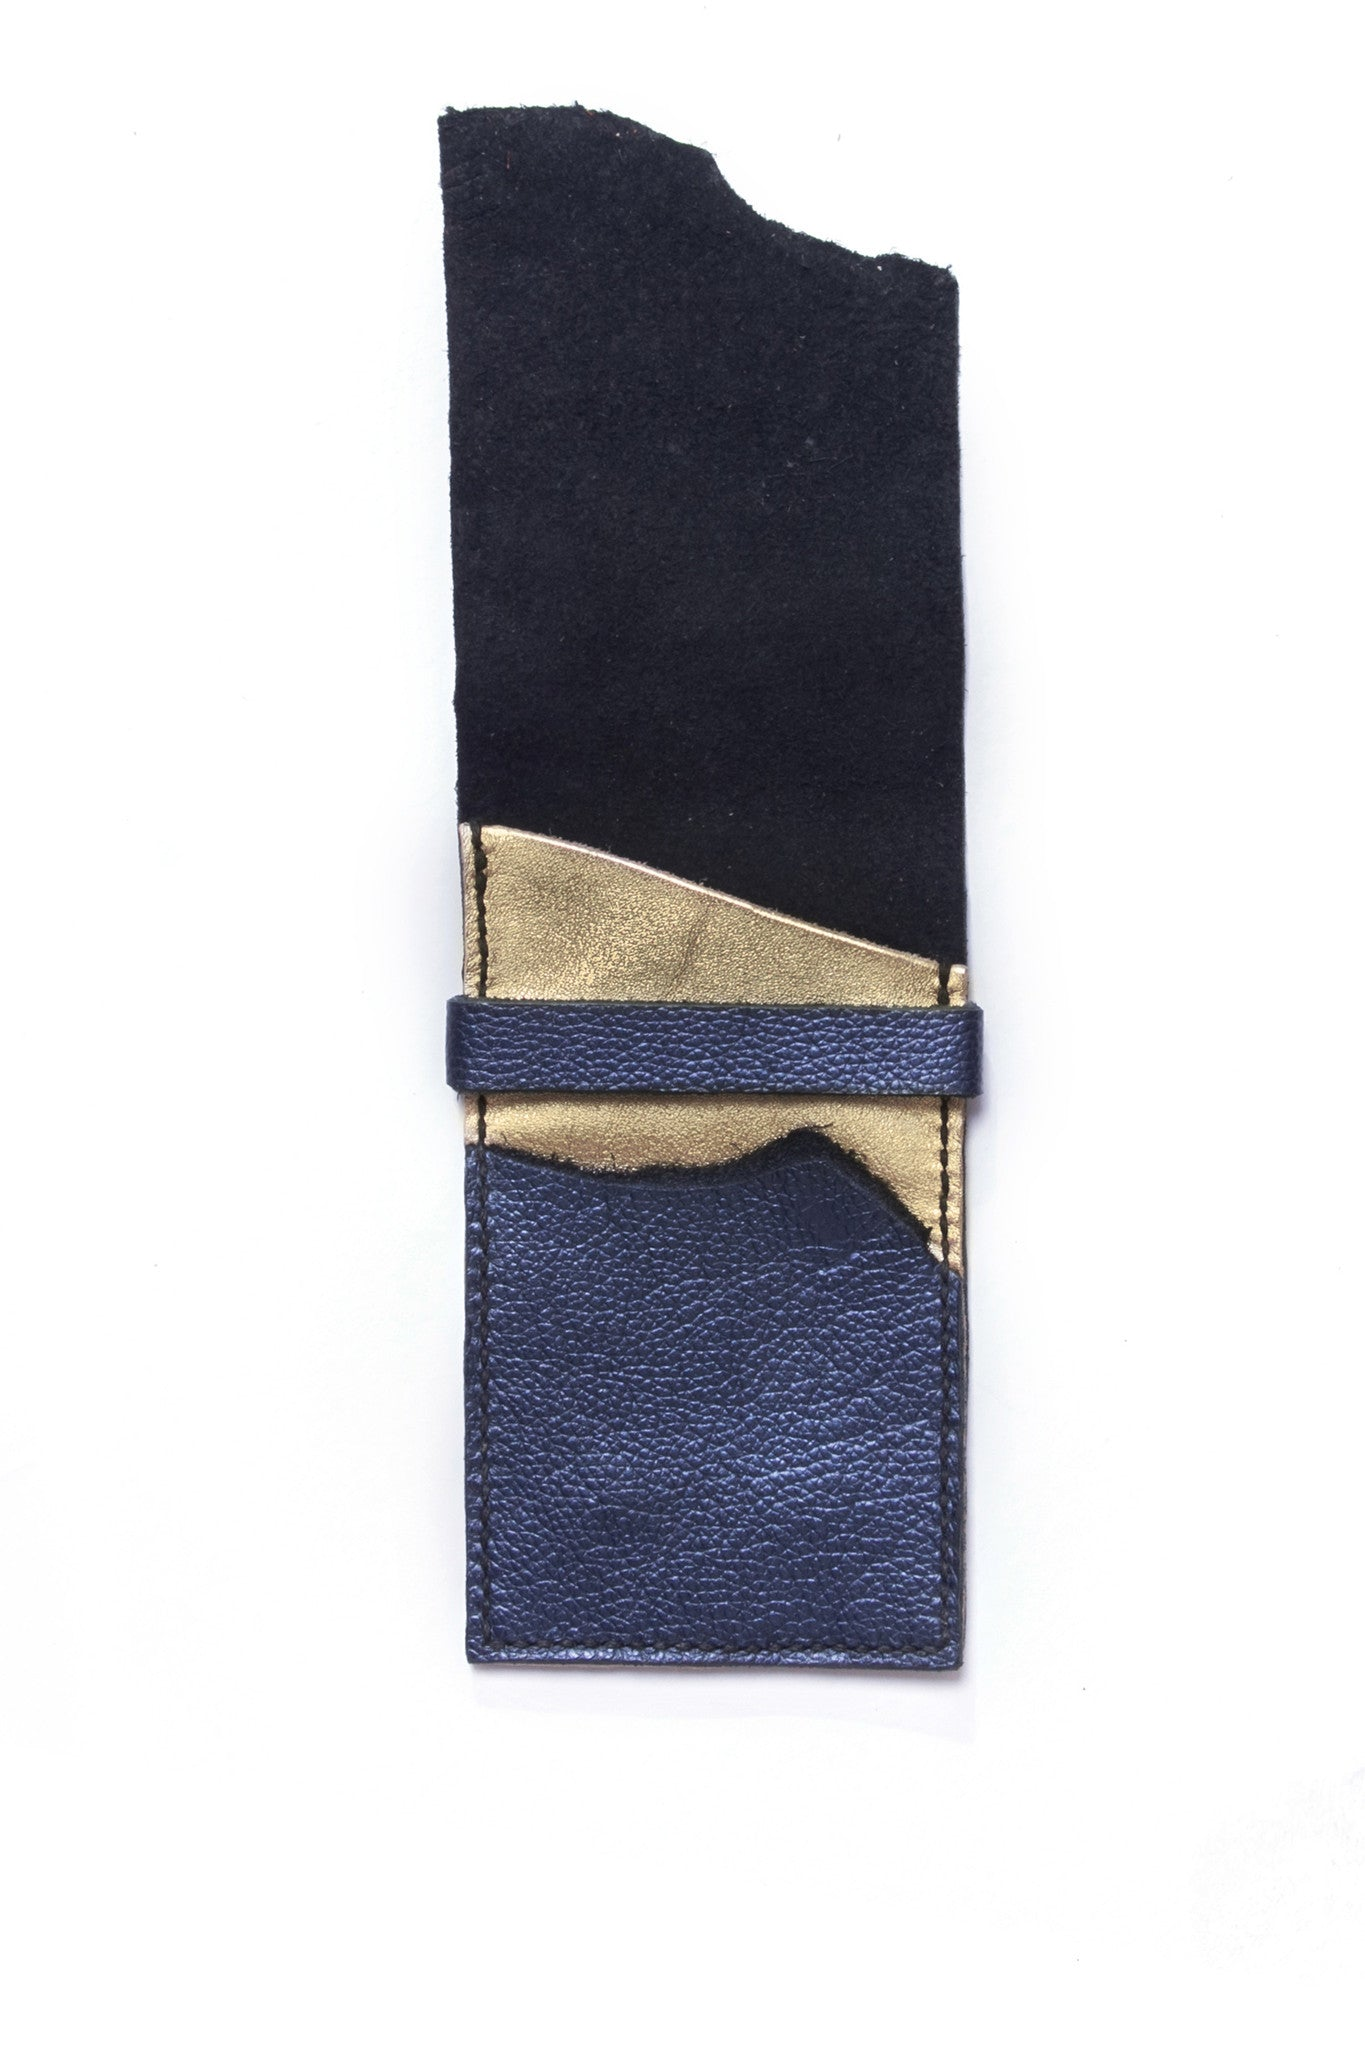 Stella Blue & Gold Leather Raw iPhone Sleeve Open View by Liana Rosa